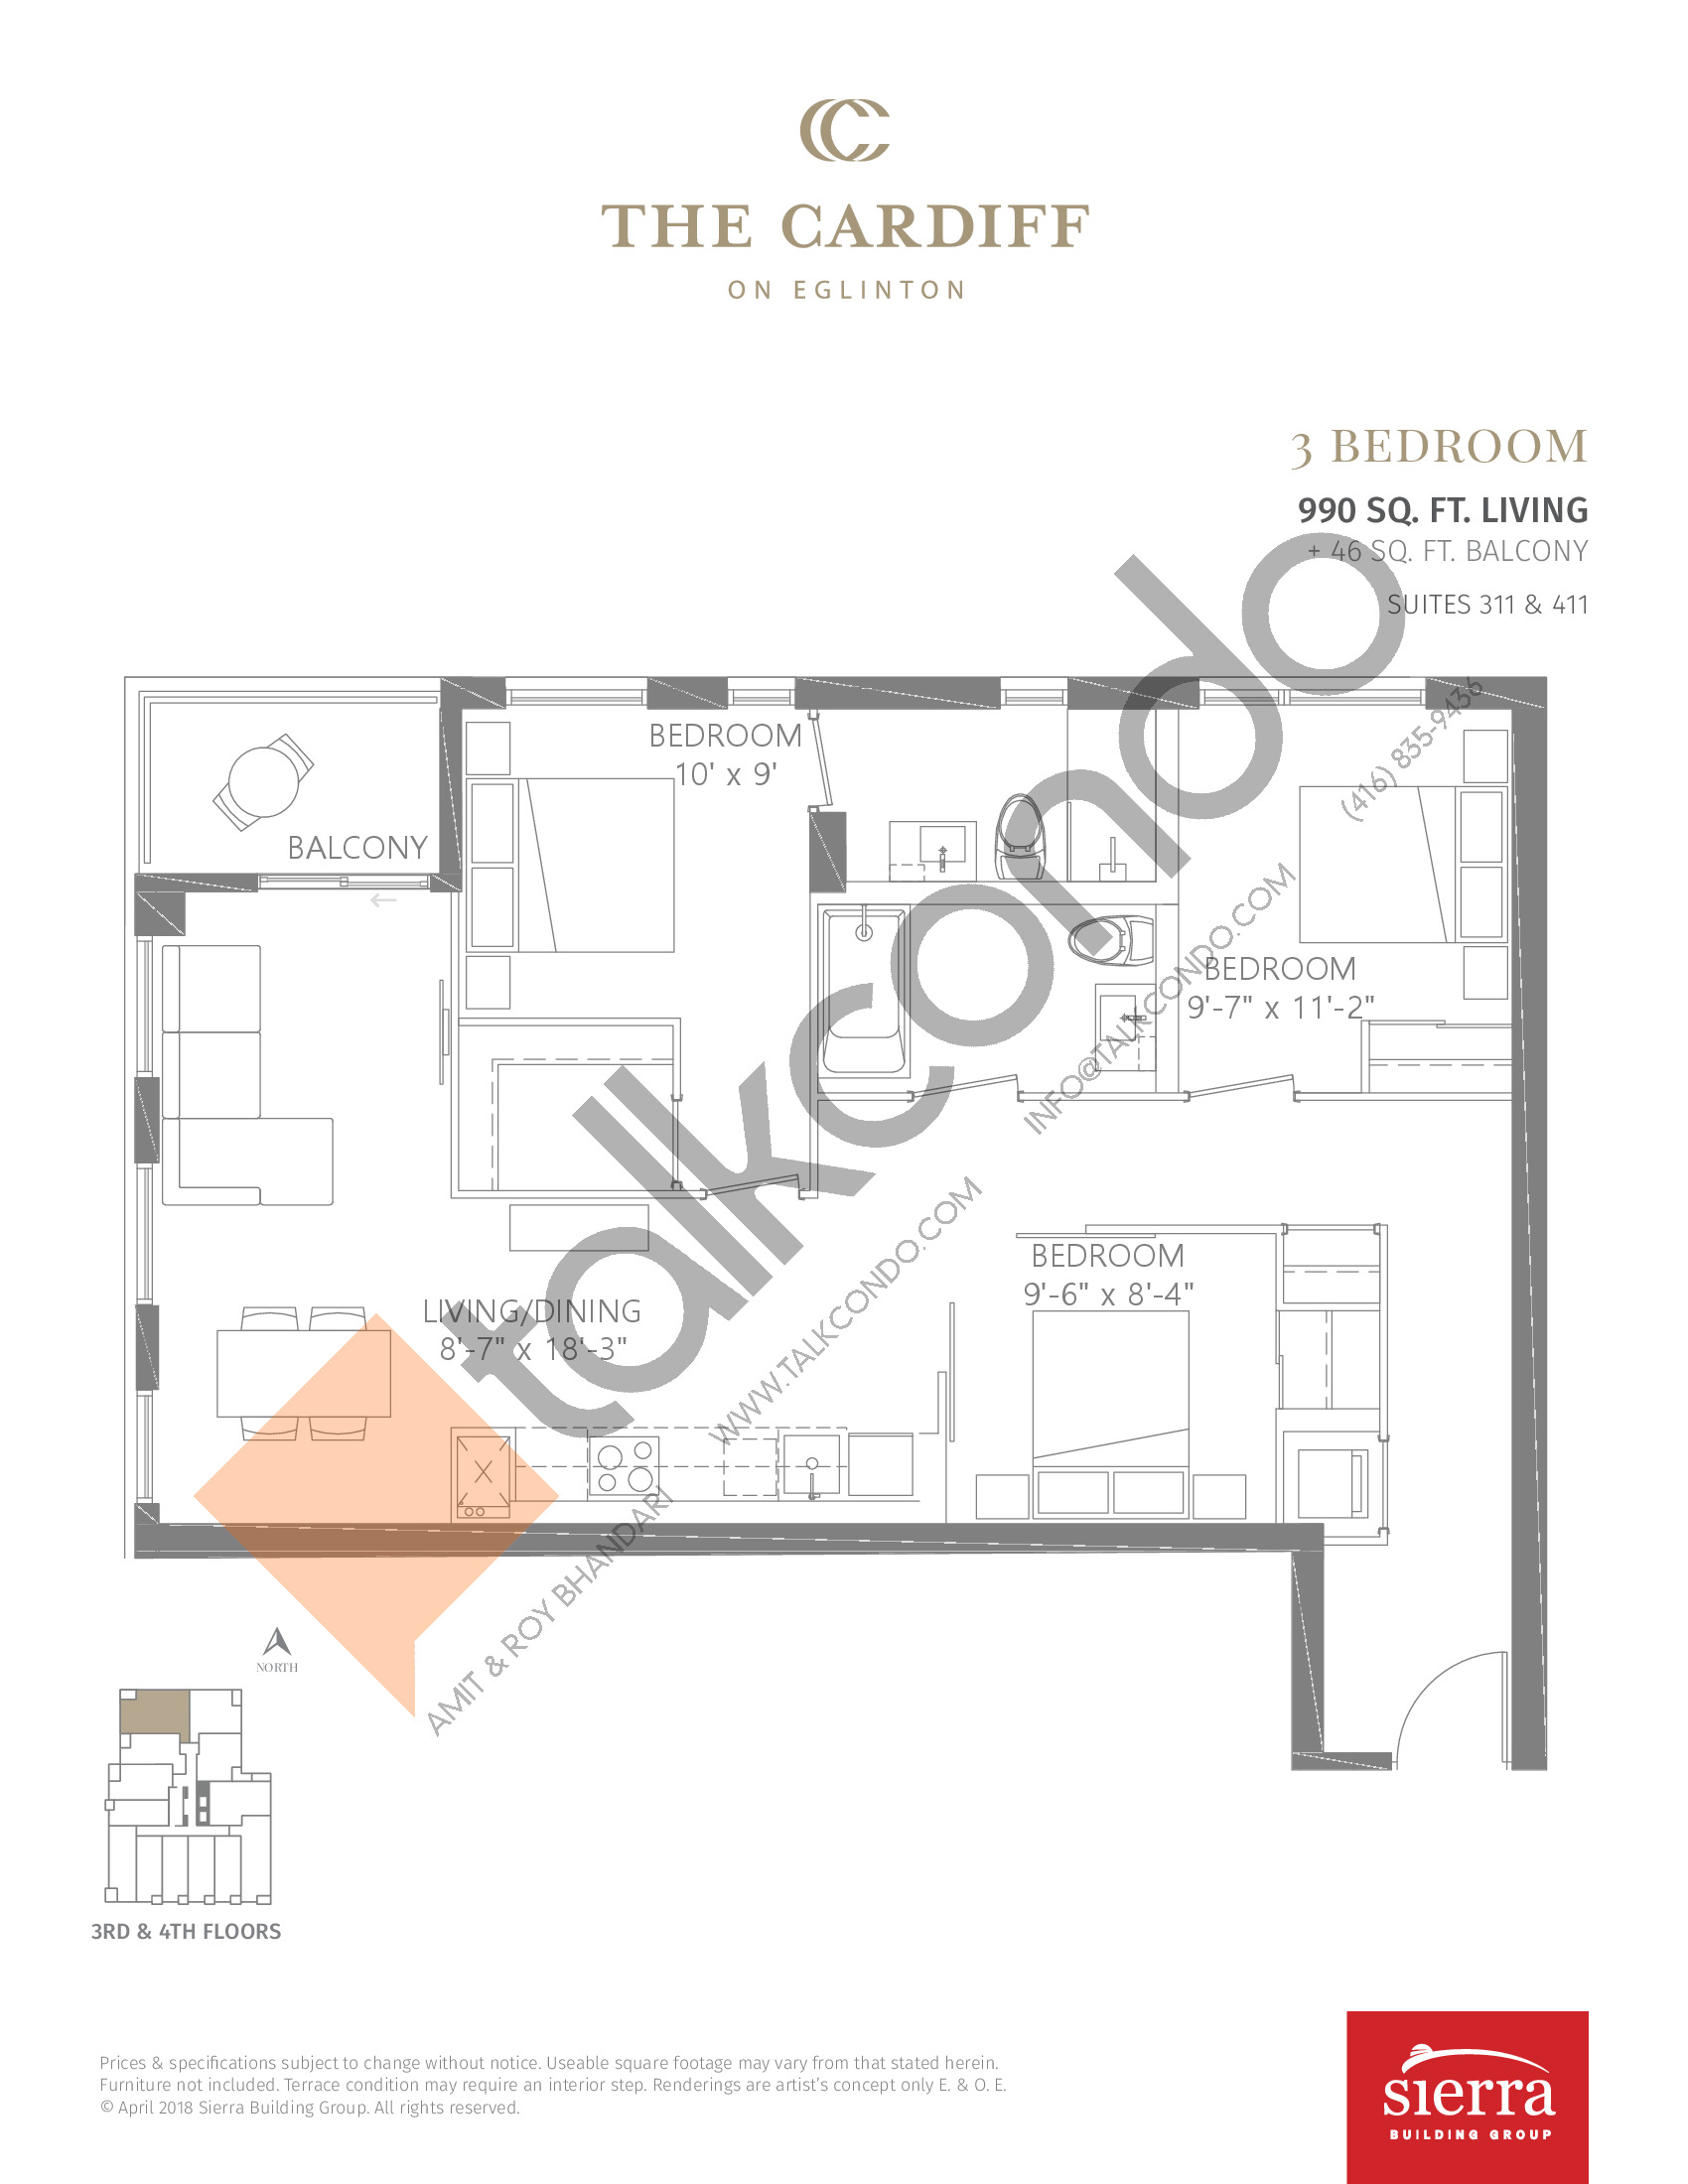 Suites 311 & 411 Floor Plan at The Cardiff Condos on Eglinton - 990 sq.ft